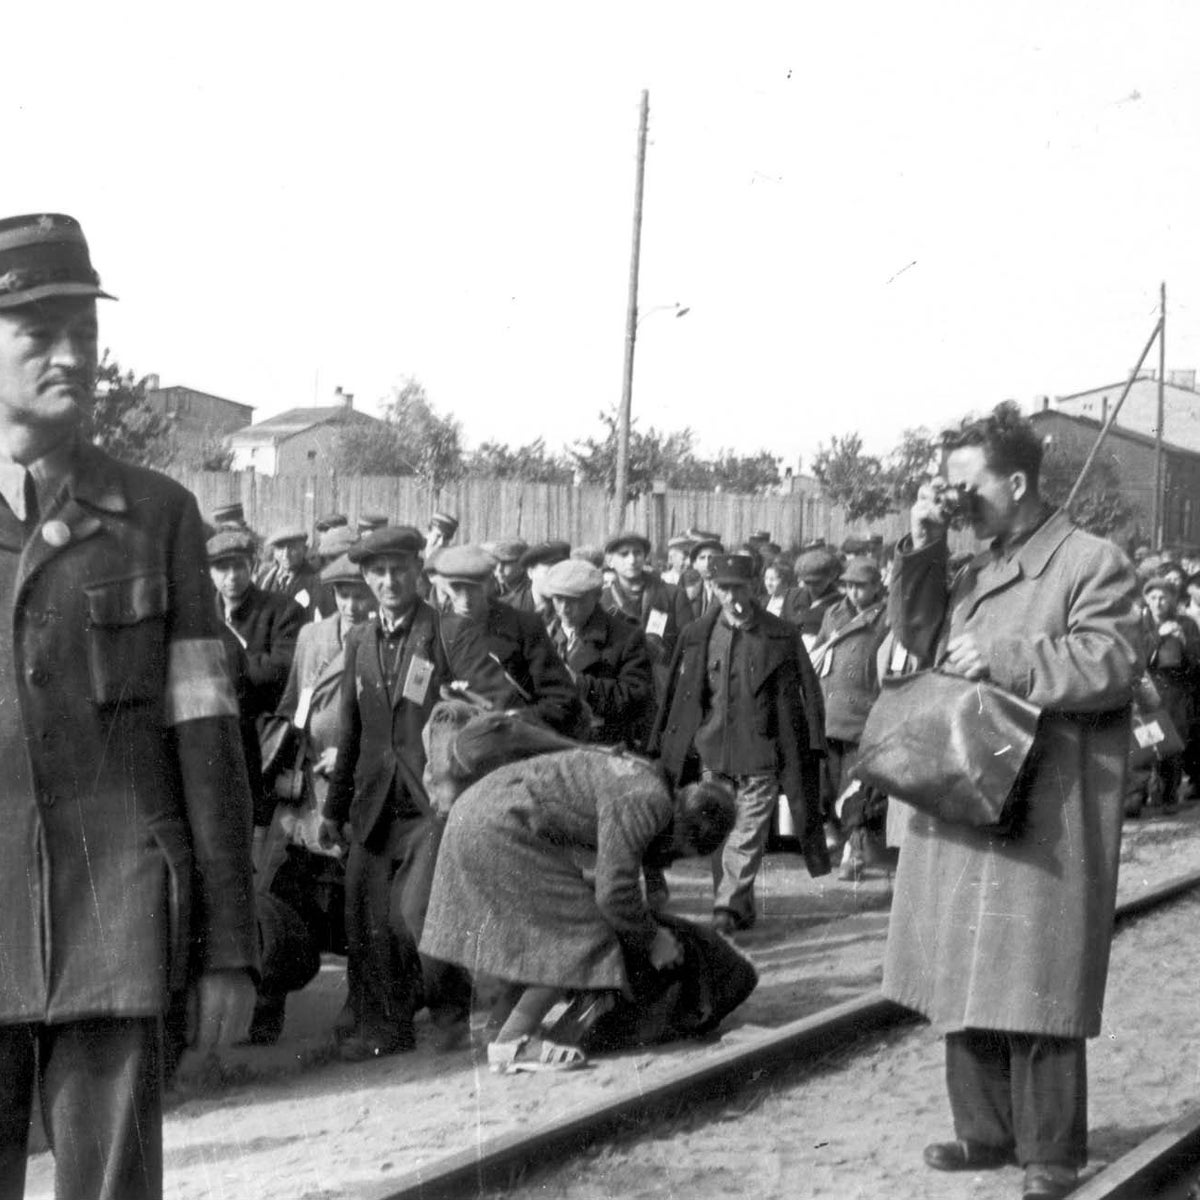 Jewish photographer Mendel Grossman shoots the deportation of Jews from the Lodz ghetto.